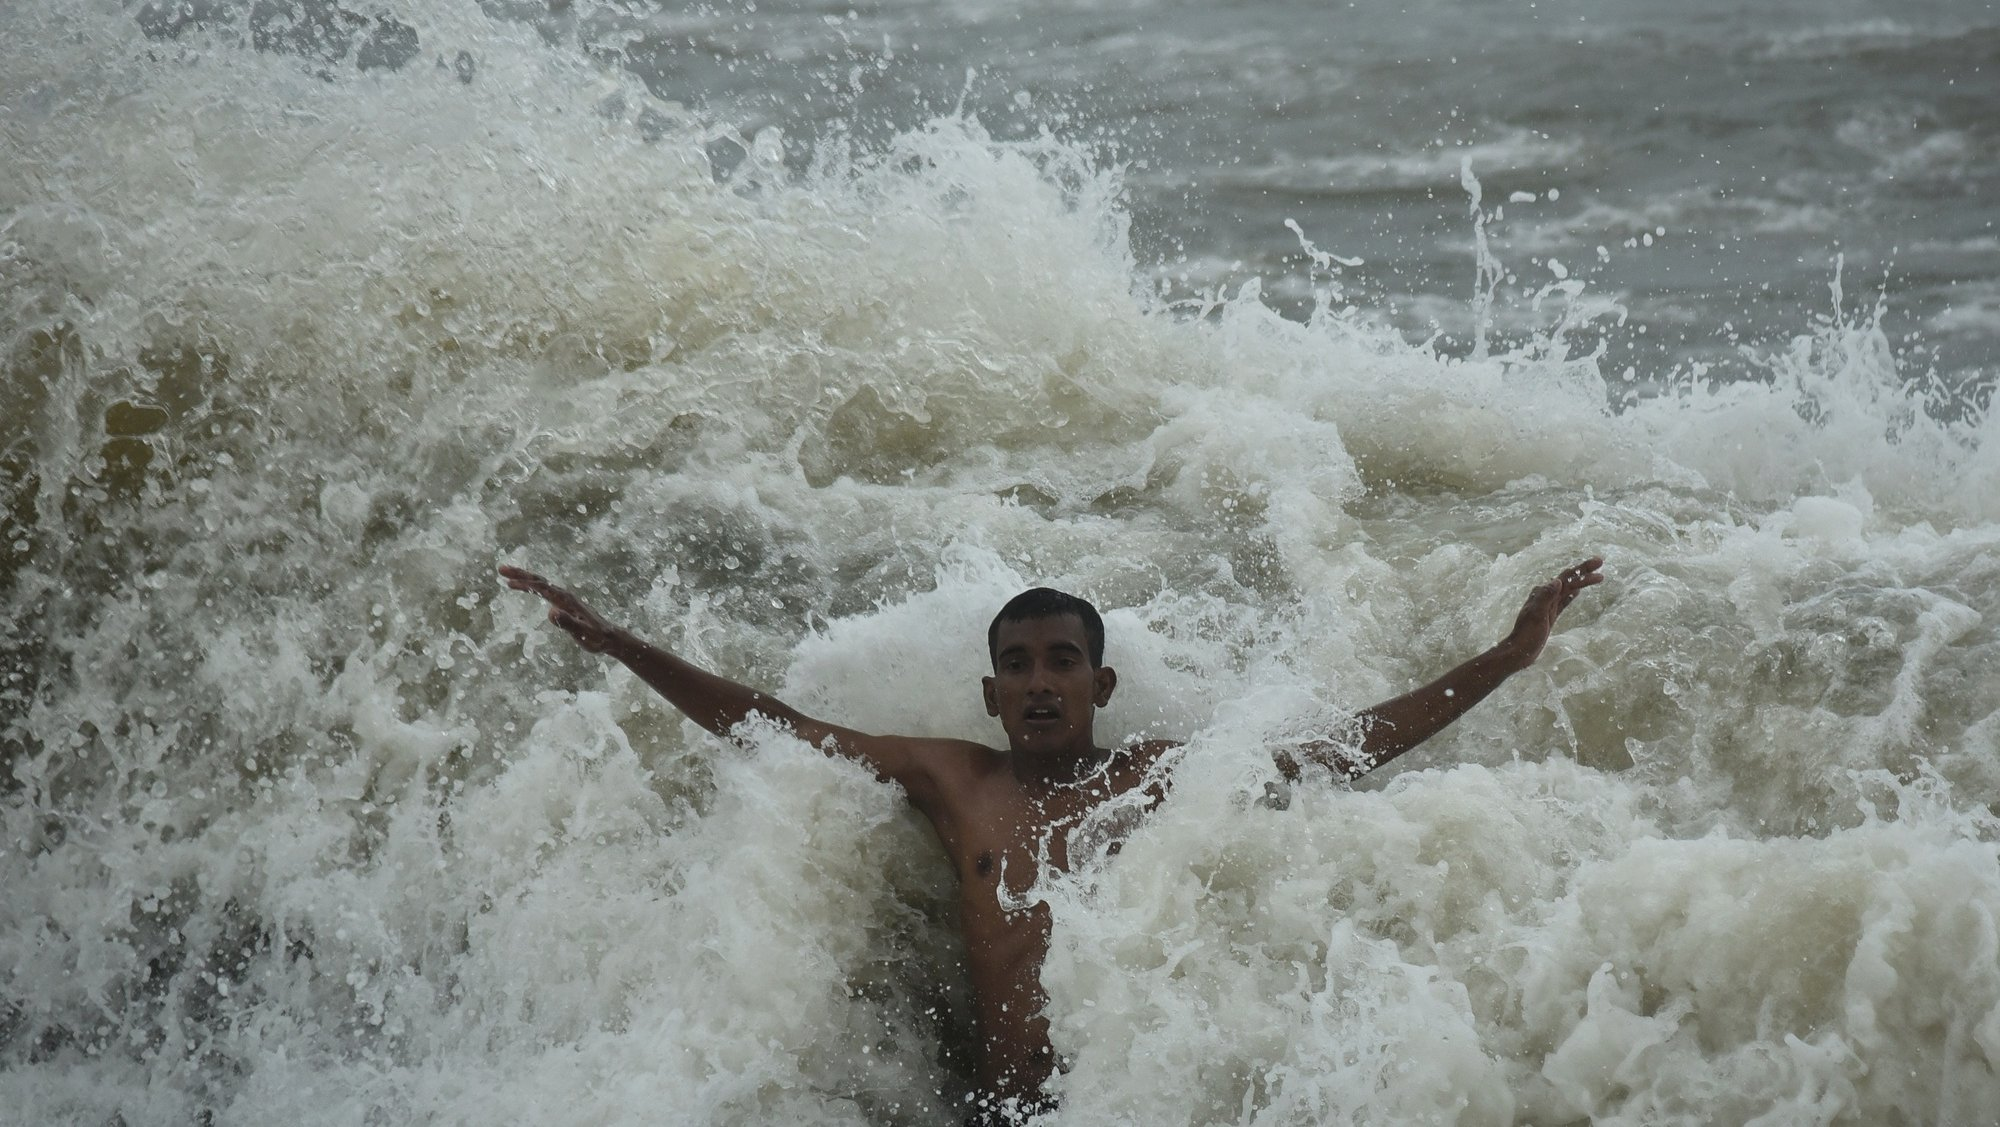 epa09356753 A youth gets splashed by a huge wave while swimming at Foreshore Estate beach in Chennai, India. 21 July 2021.  EPA/IDREES MOHAMMED